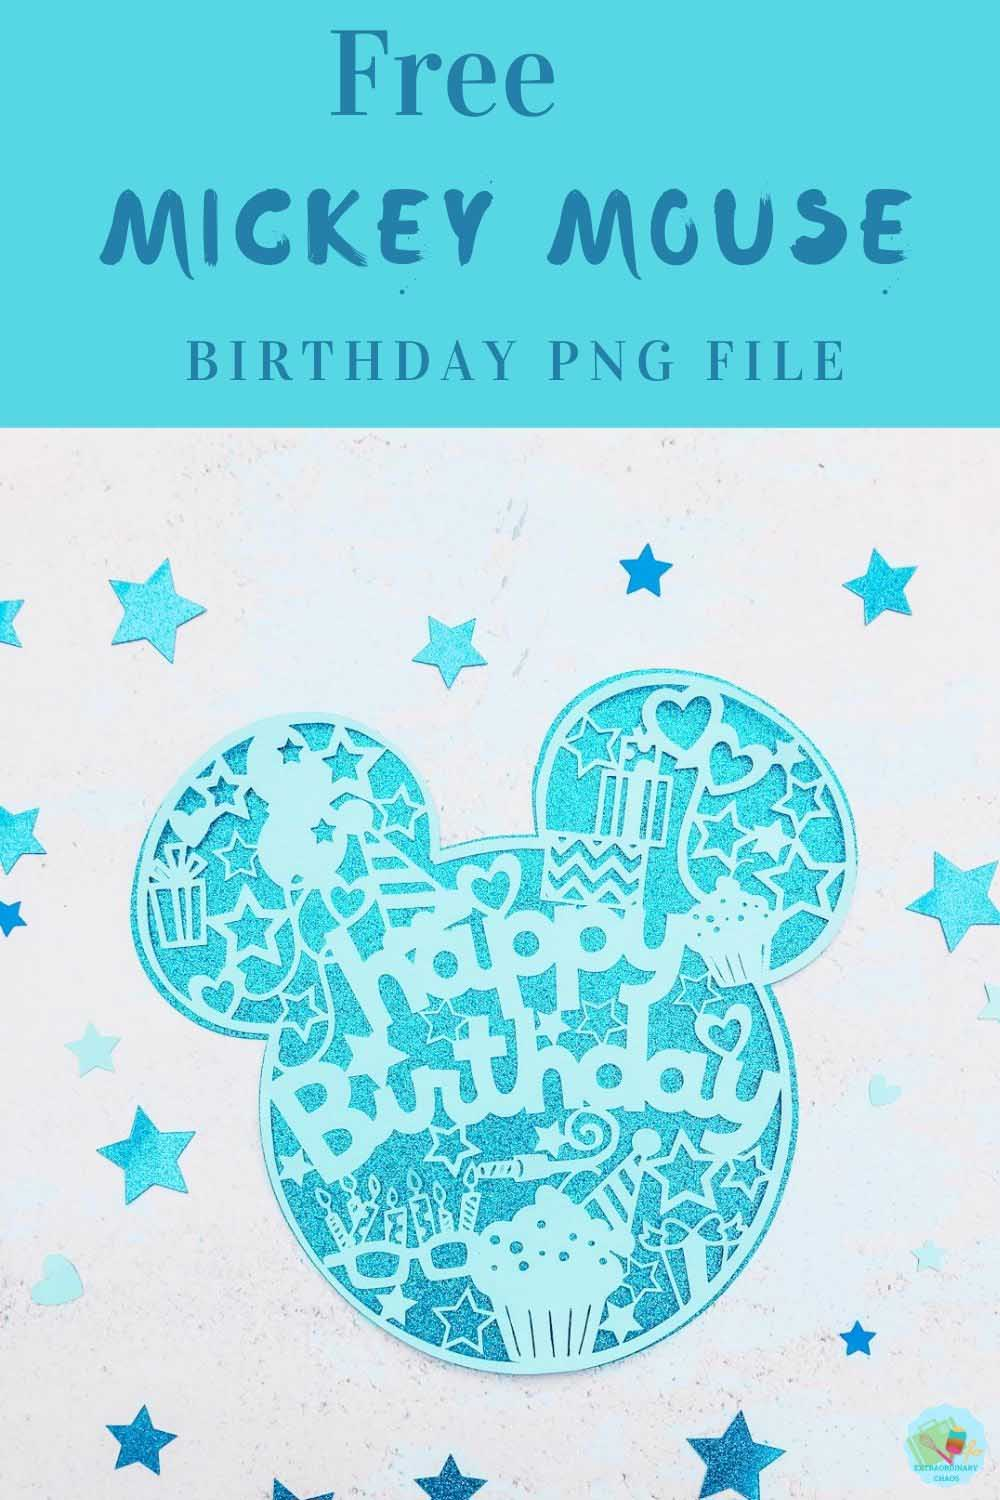 Free Mickey Mouse Birthday png file for Cricut and Silhouette